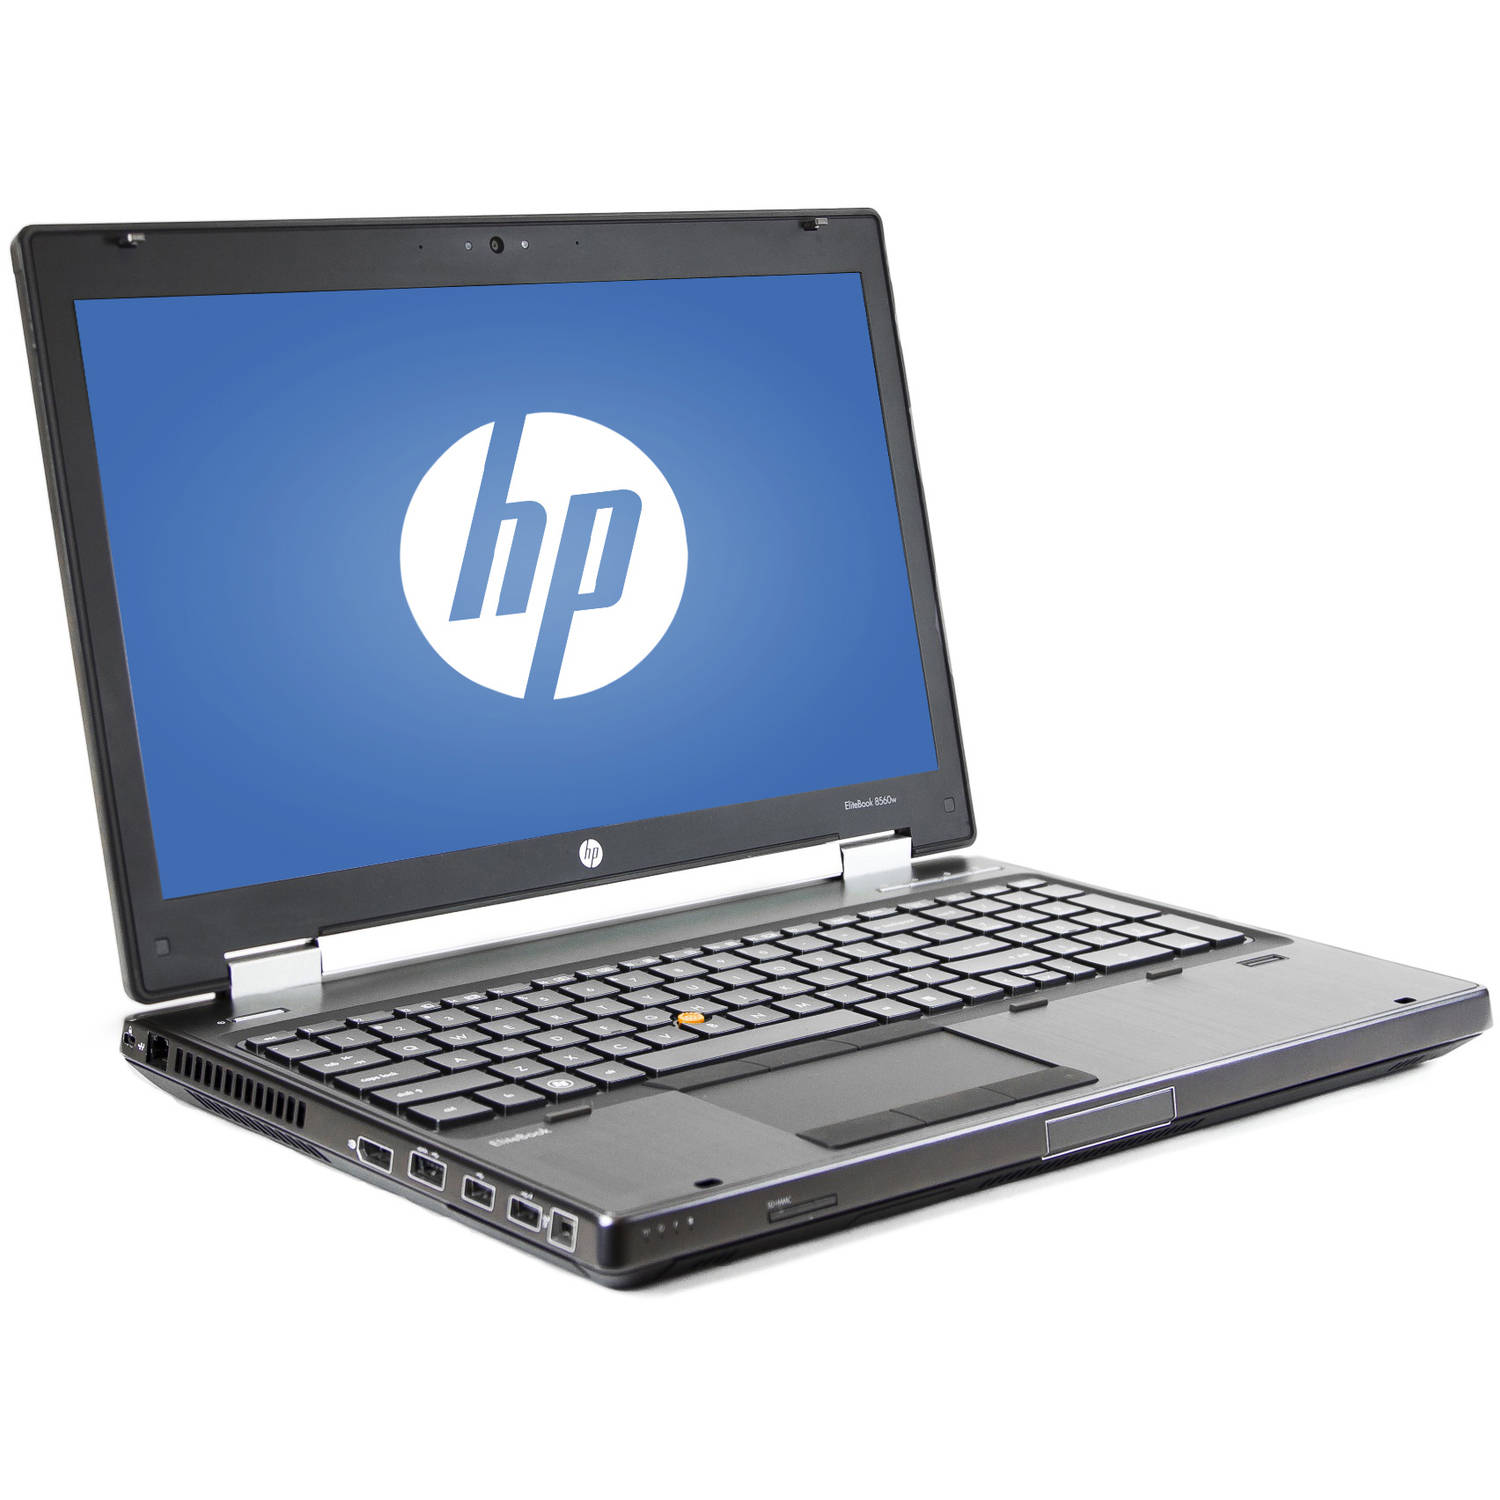 "Refurbished HP Silver 15.6"" 8560W Laptop PC with Intel Core i5-2540M Processor, 8GB Memory, 128GB SSD and Windows 7 Professional"